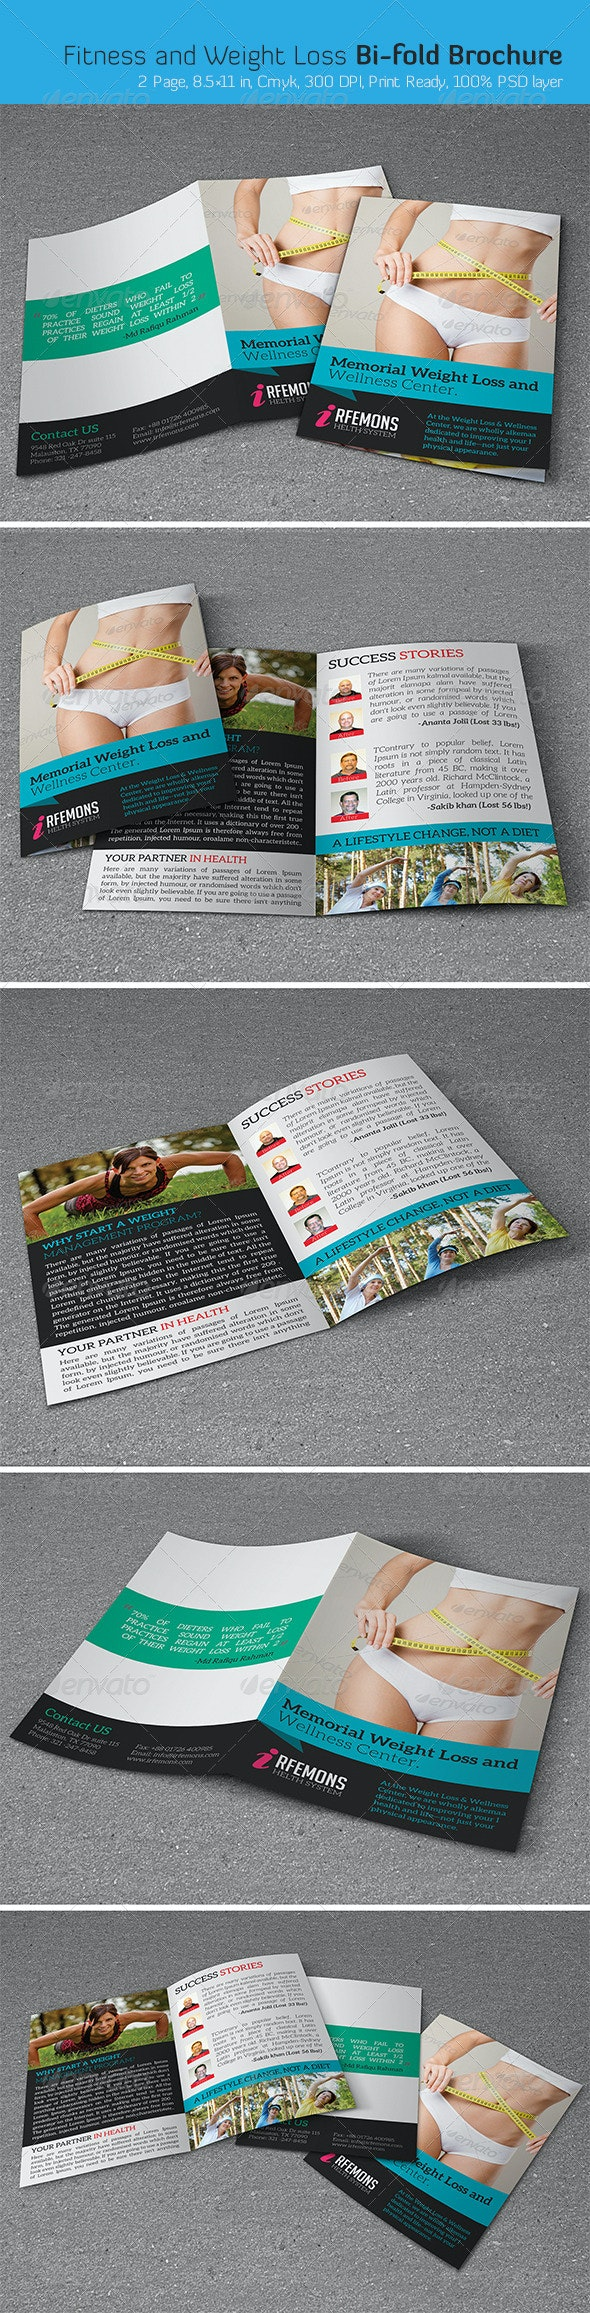 Fitness and Weight Loss Bi-fold Brochure - Corporate Brochures